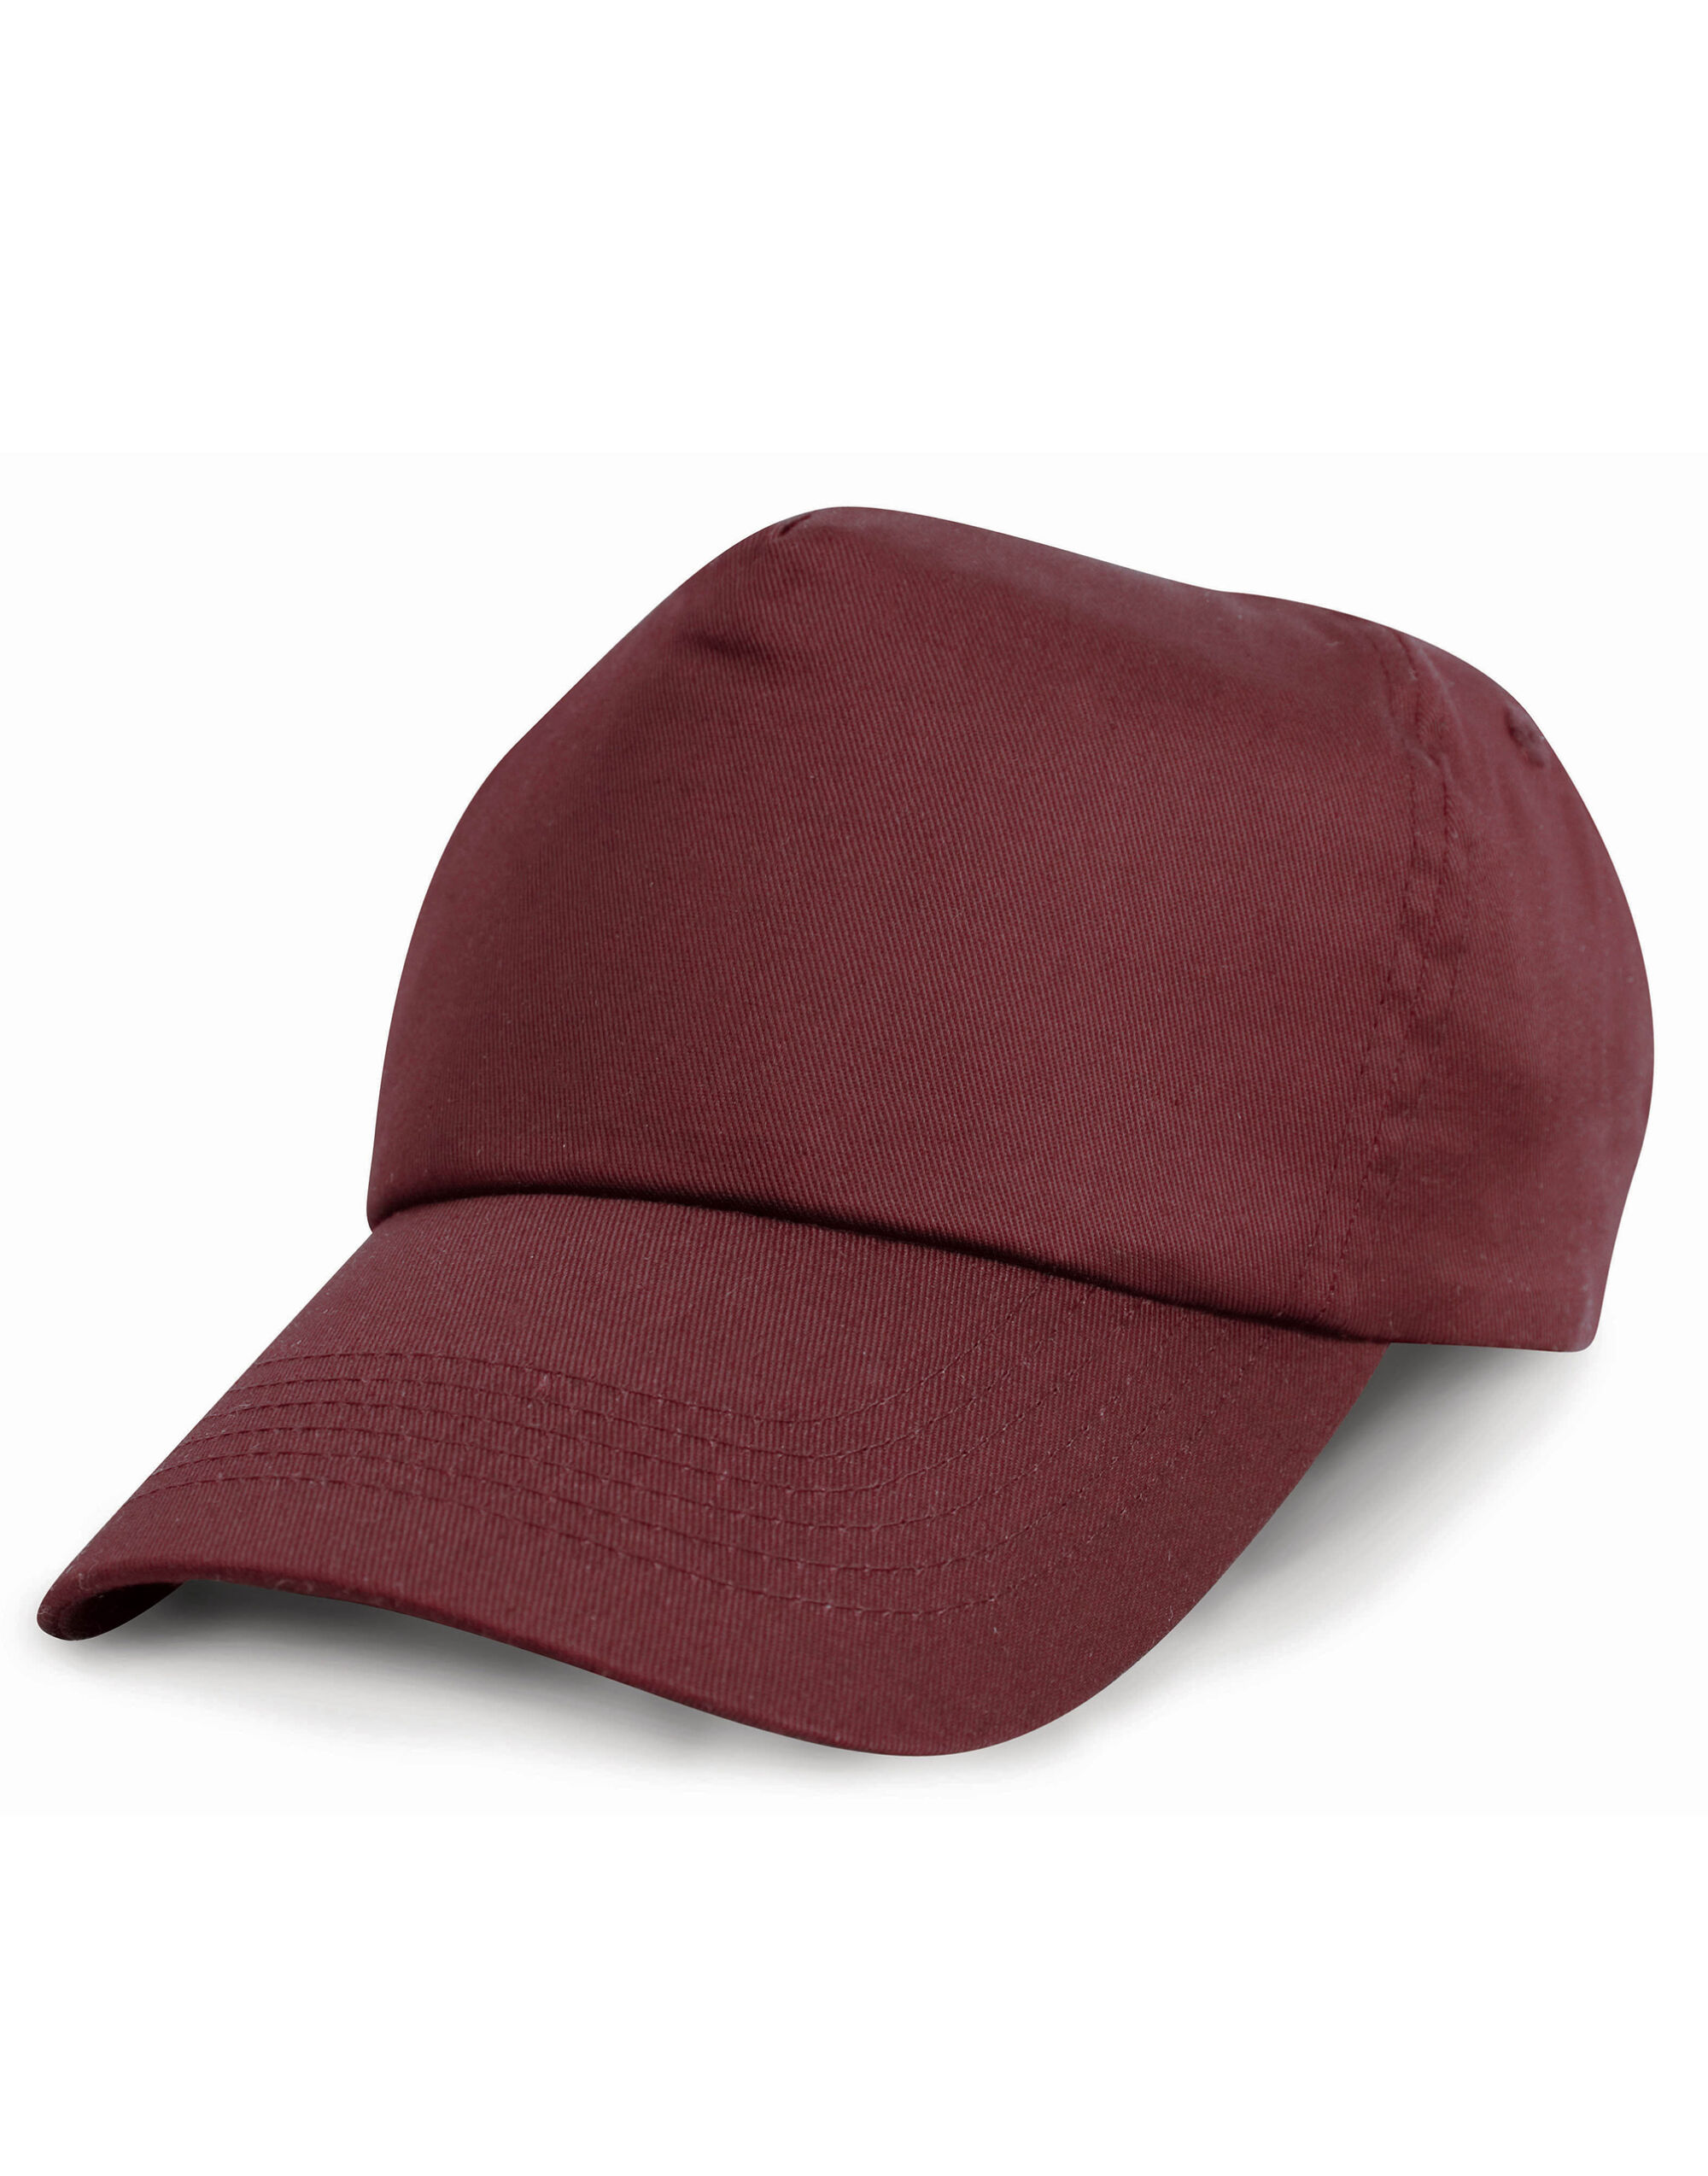 Children's Cotton Cap